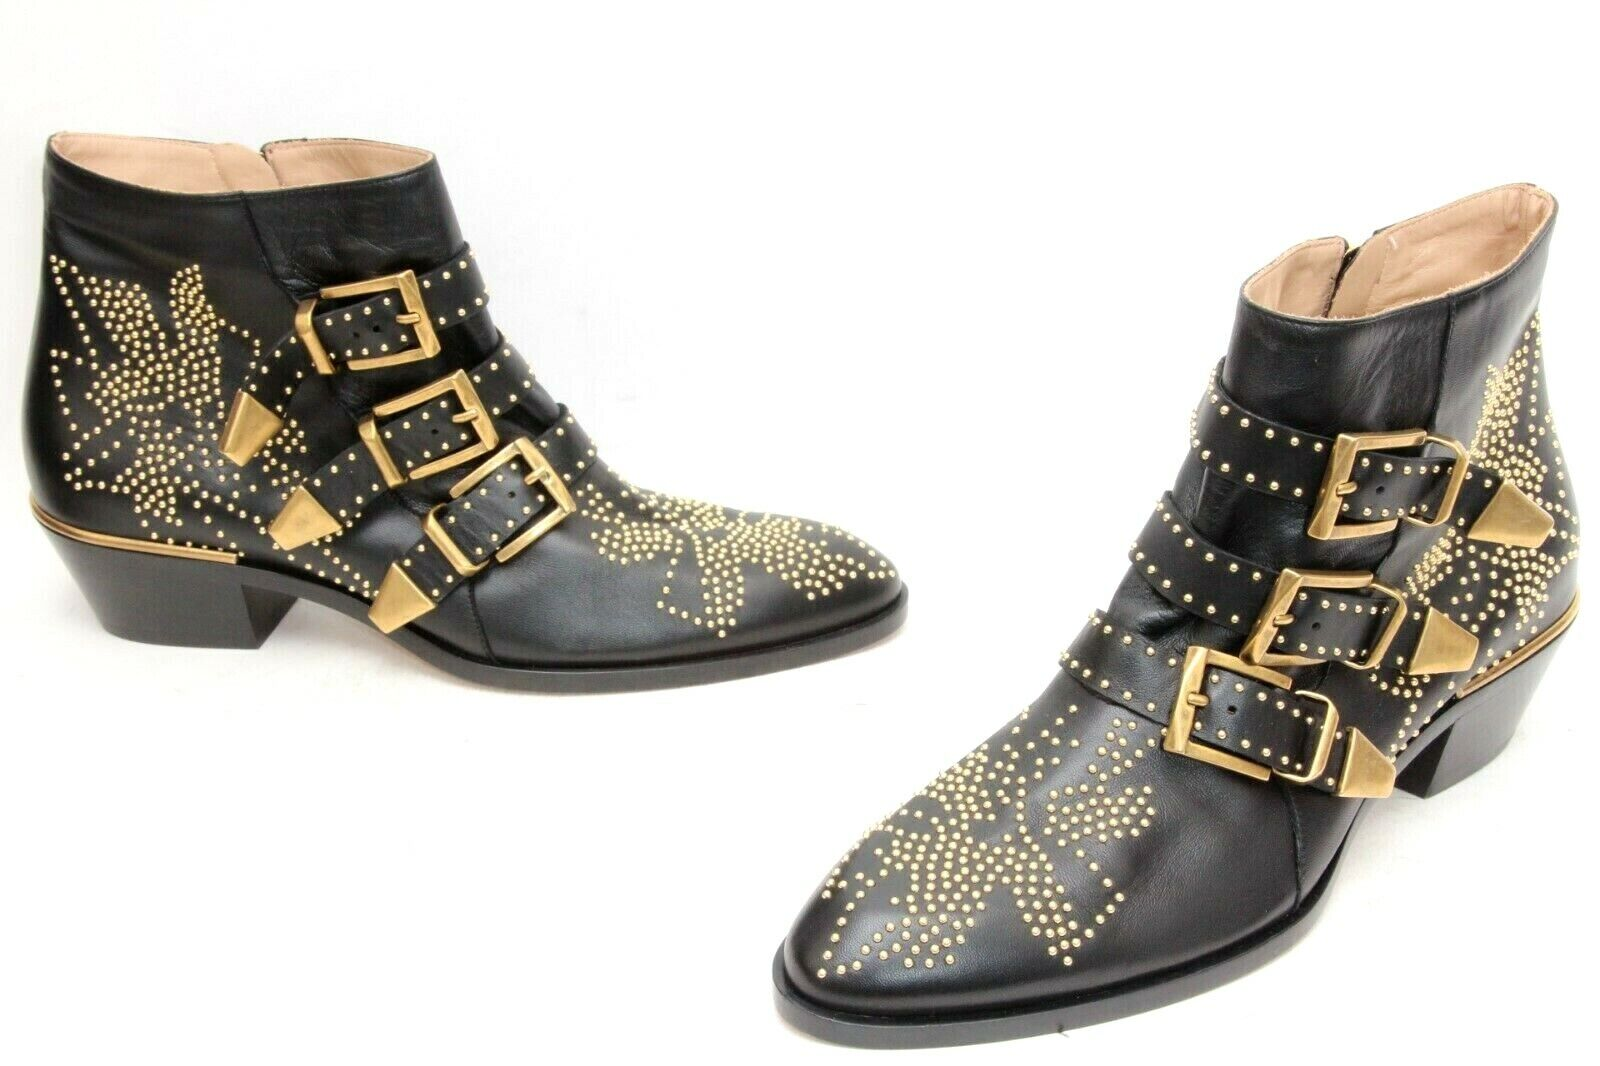 Chloe Sussana Booties Studded Ankle Lambskin Leather Boots Sz 39 US 9